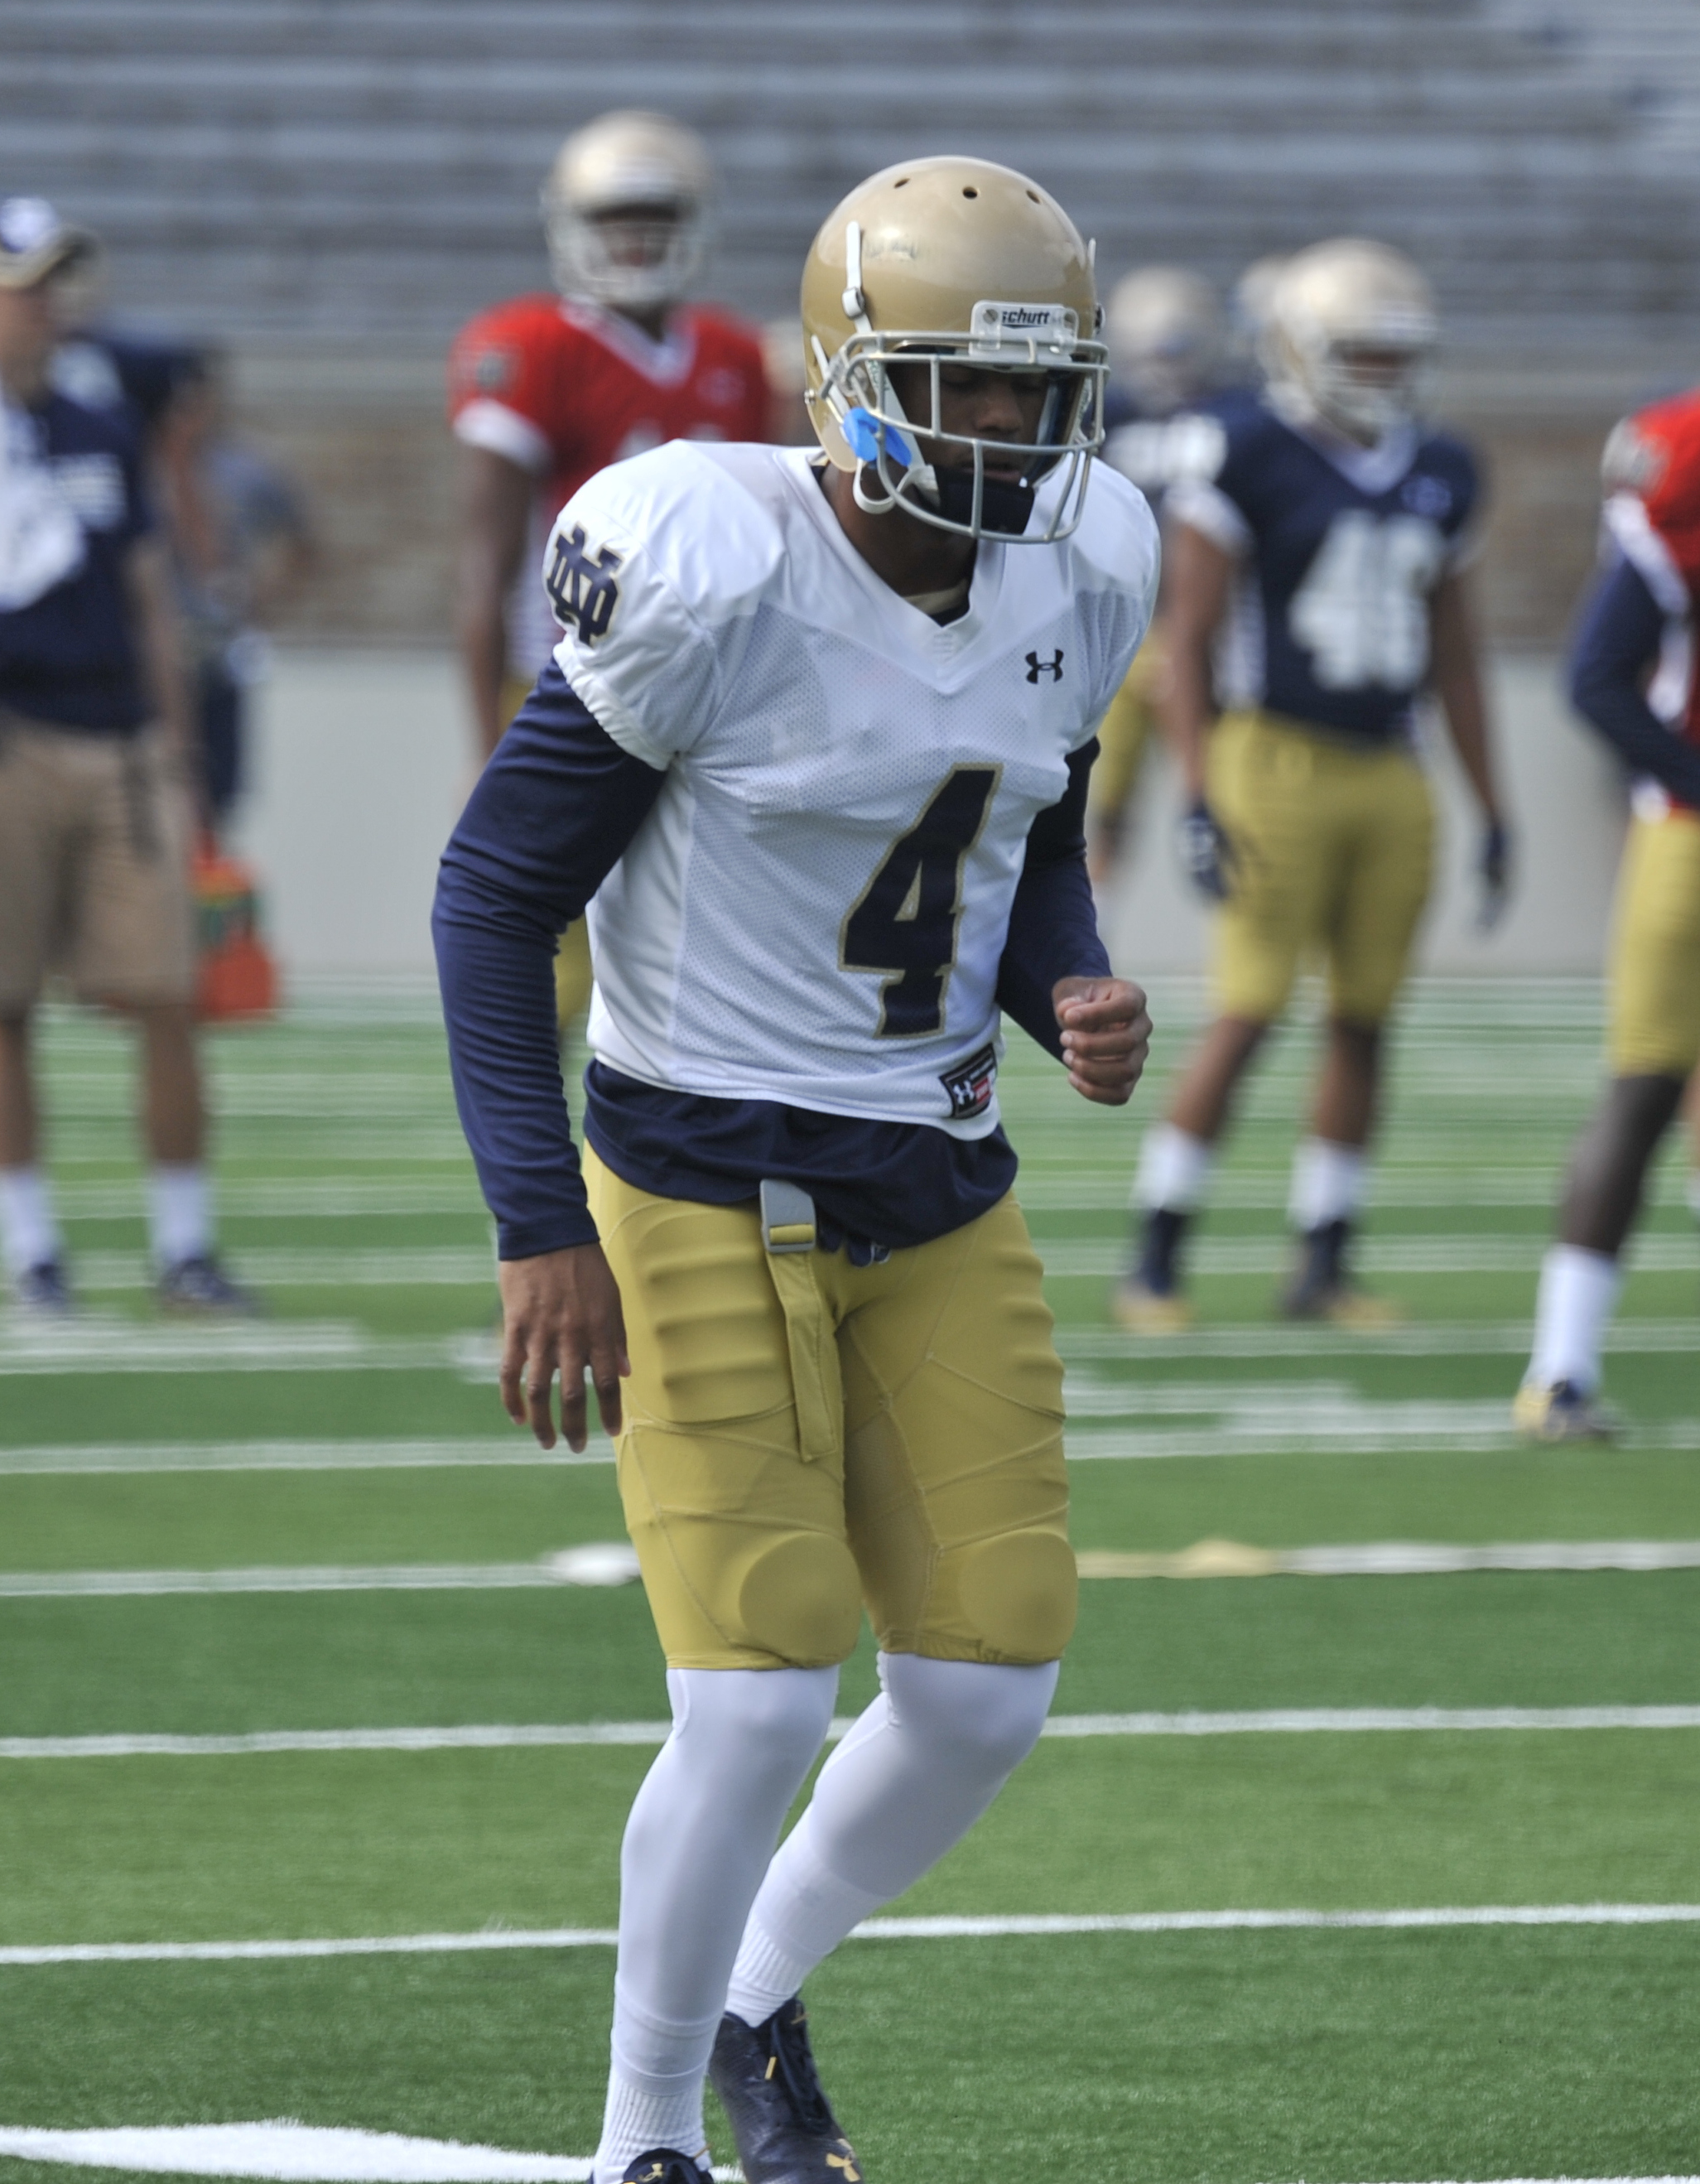 Notre Dame safety Eilar Hardy loosens up during practice of an NCAA college football team in South Bend, Ind. Aug. 16, 2014.  (AP Photo/Joe Raymond)